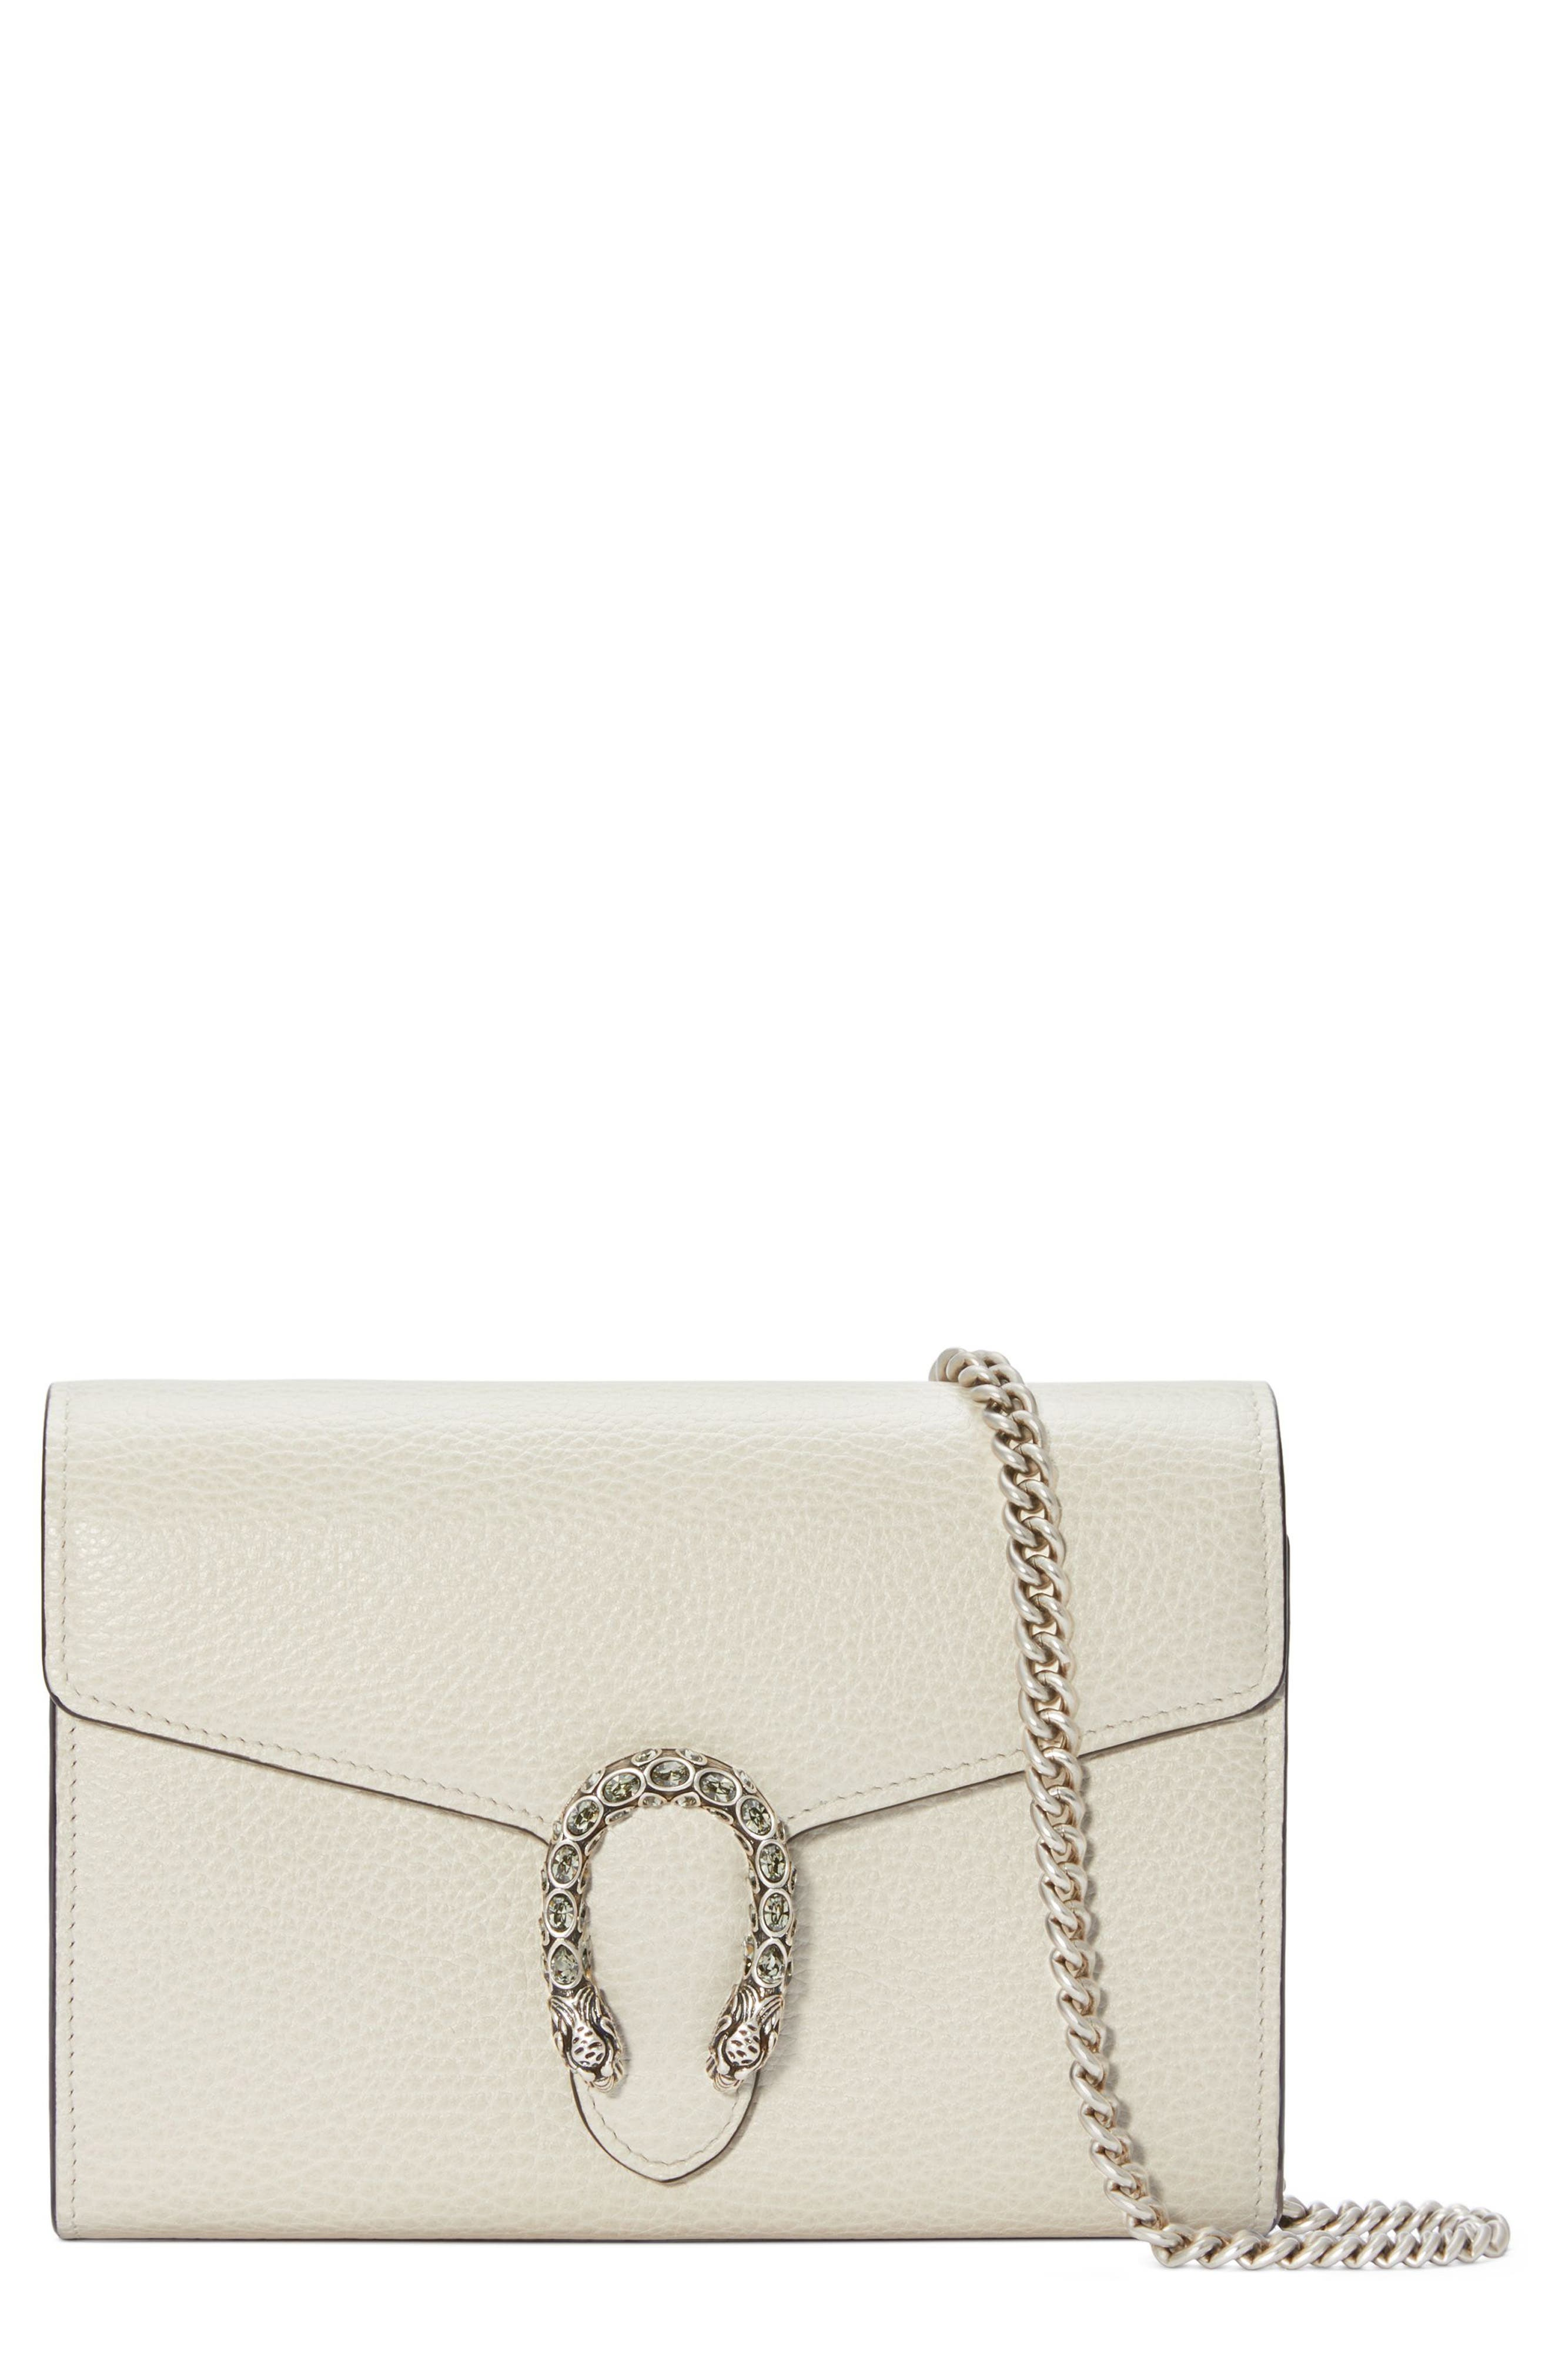 Small Dionysus Leather Clutch,                             Main thumbnail 1, color,                             MYSTIC WHITE/ BLACK DIAMOND